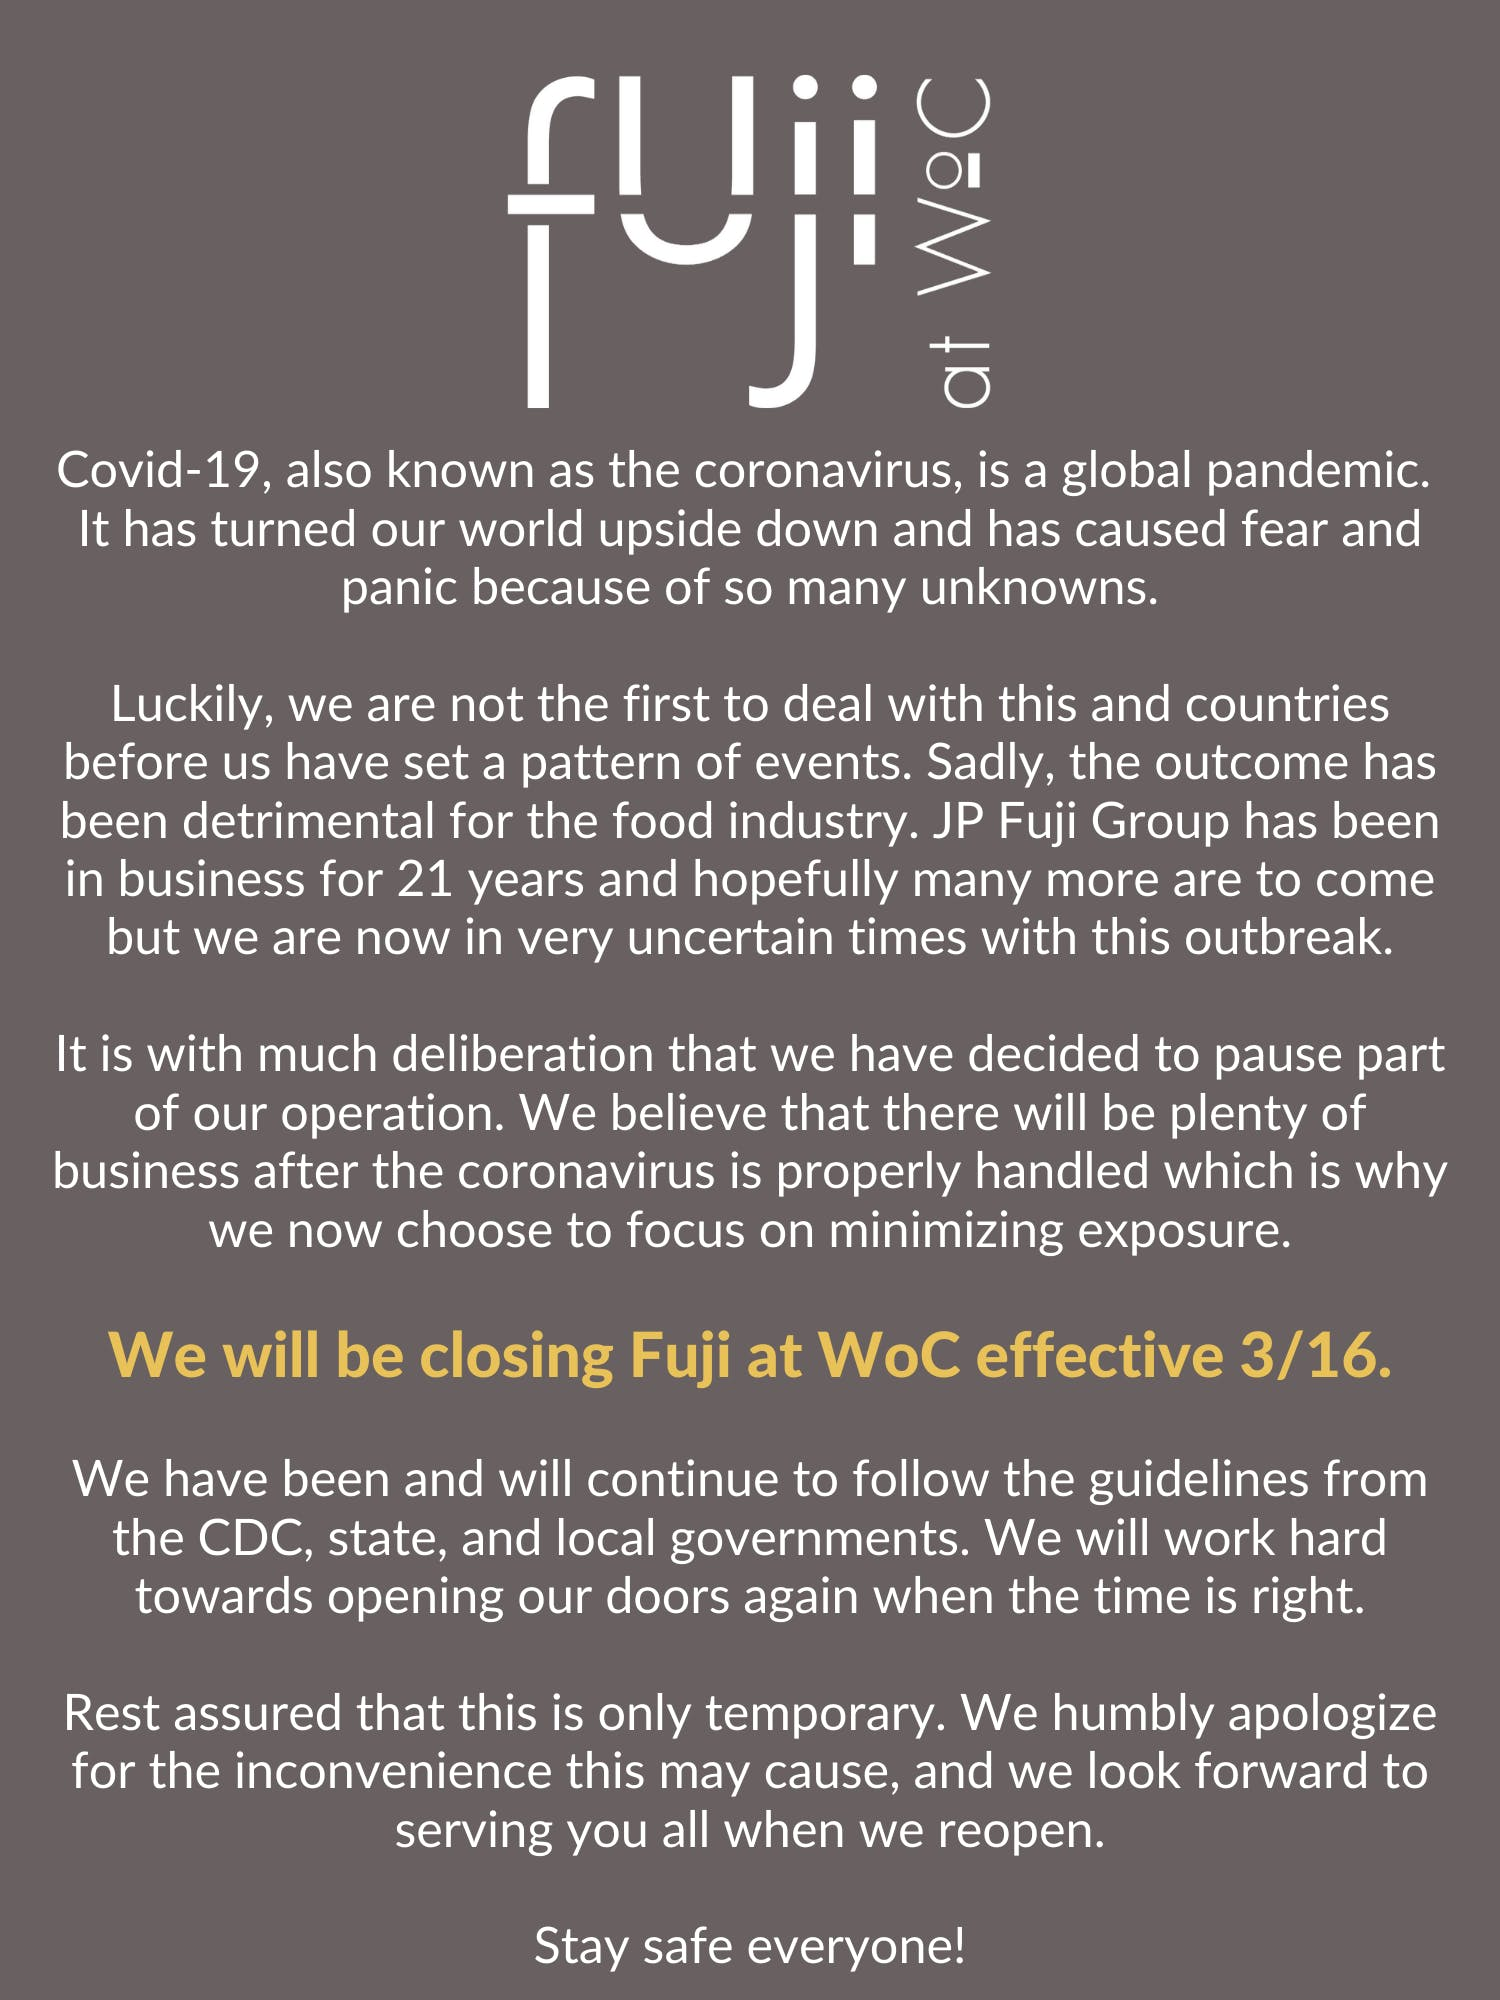 Fuji at WoC will be closed due to the Coronavirus pandemic. Stay safe everyone!